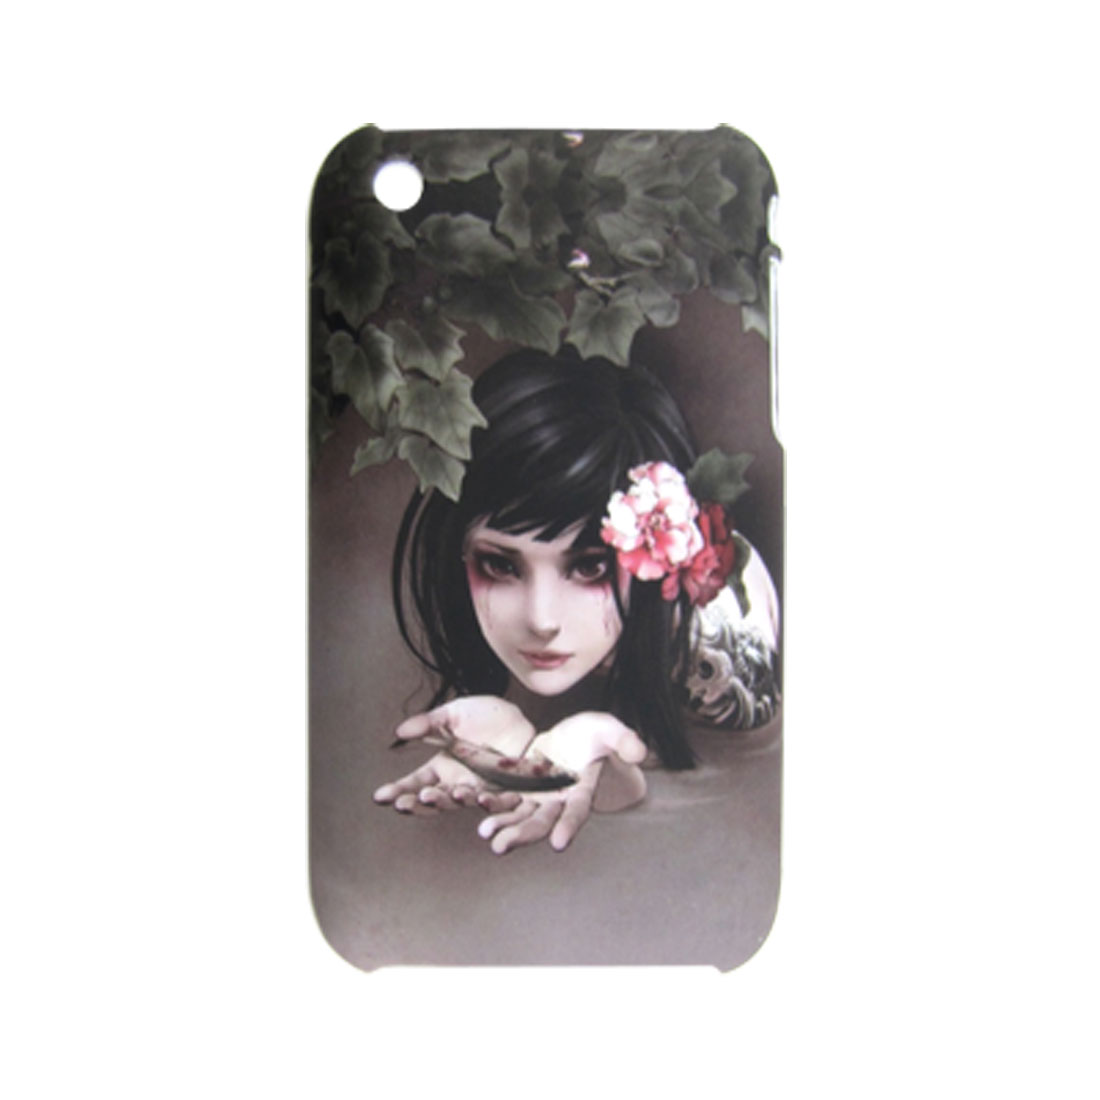 Beauty Girl Pattern Rubberized Plastic Back Case for iPhone 3G